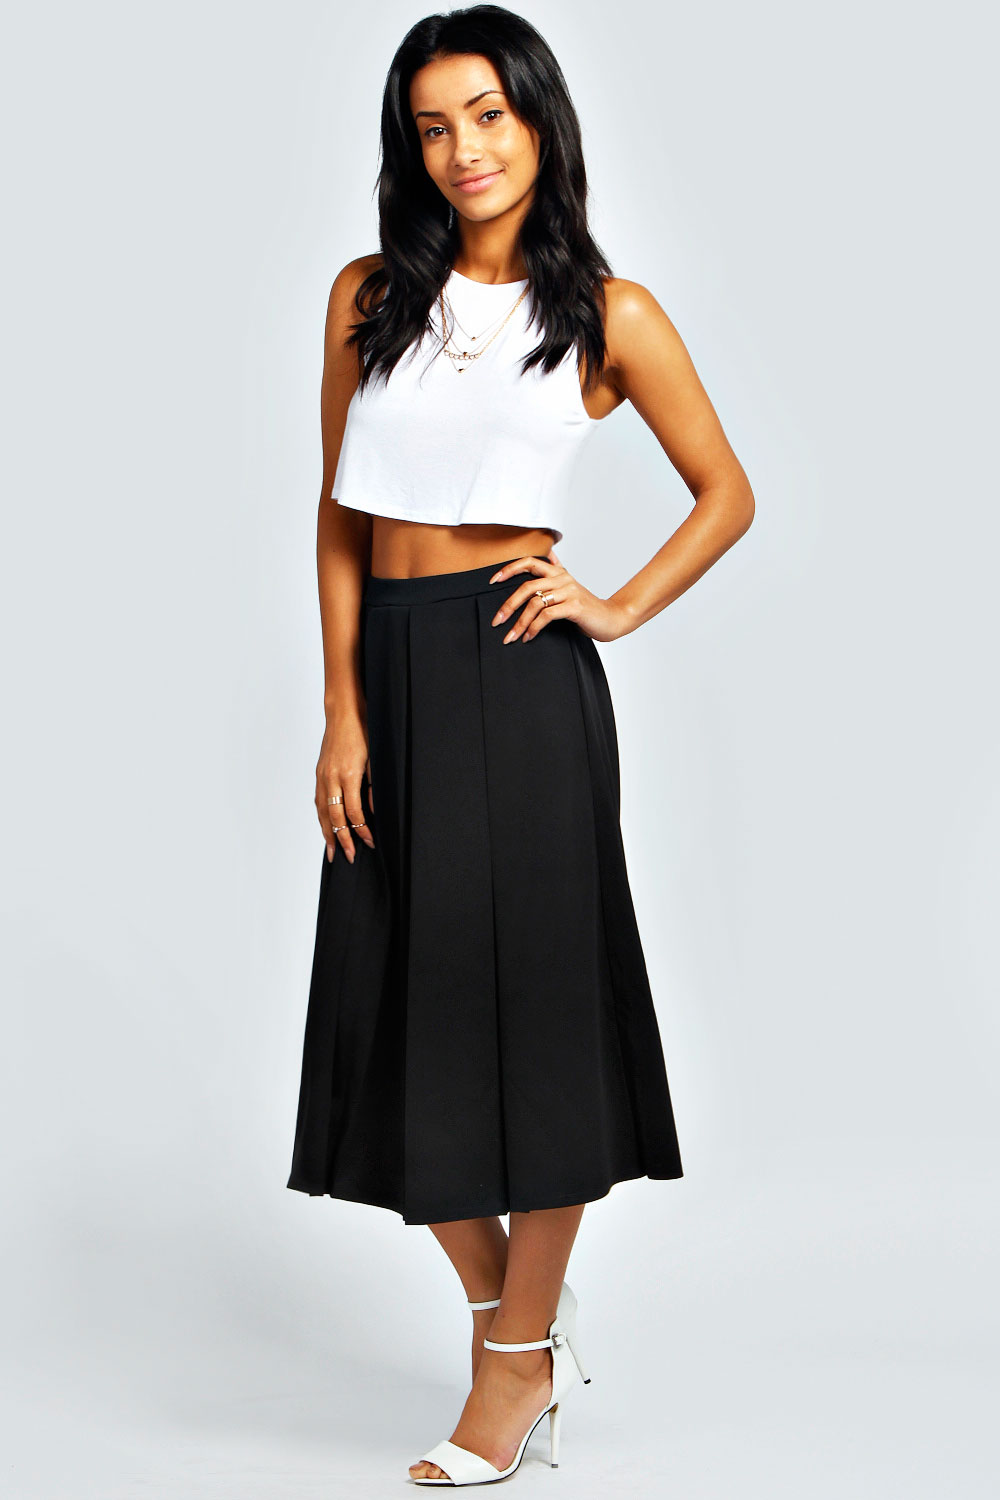 Boohoo Womens Ladies Bea Calf Length Box Pleat Scuba Midi Skirt | eBay